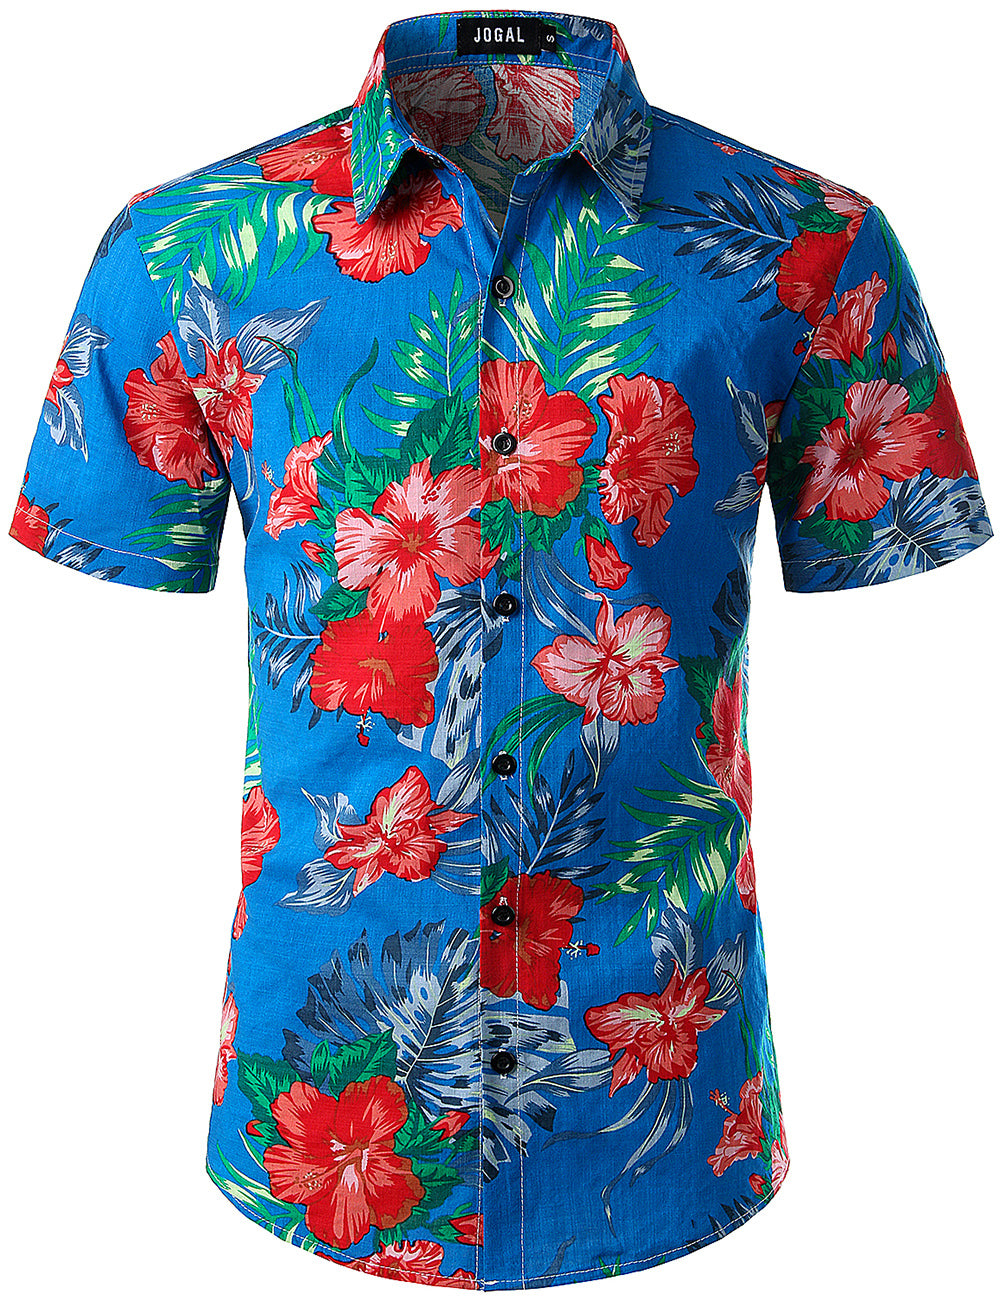 JOGAL Men's Flower Casual Button Down Short Sleeve Hawaiian Shirt(Ginger)